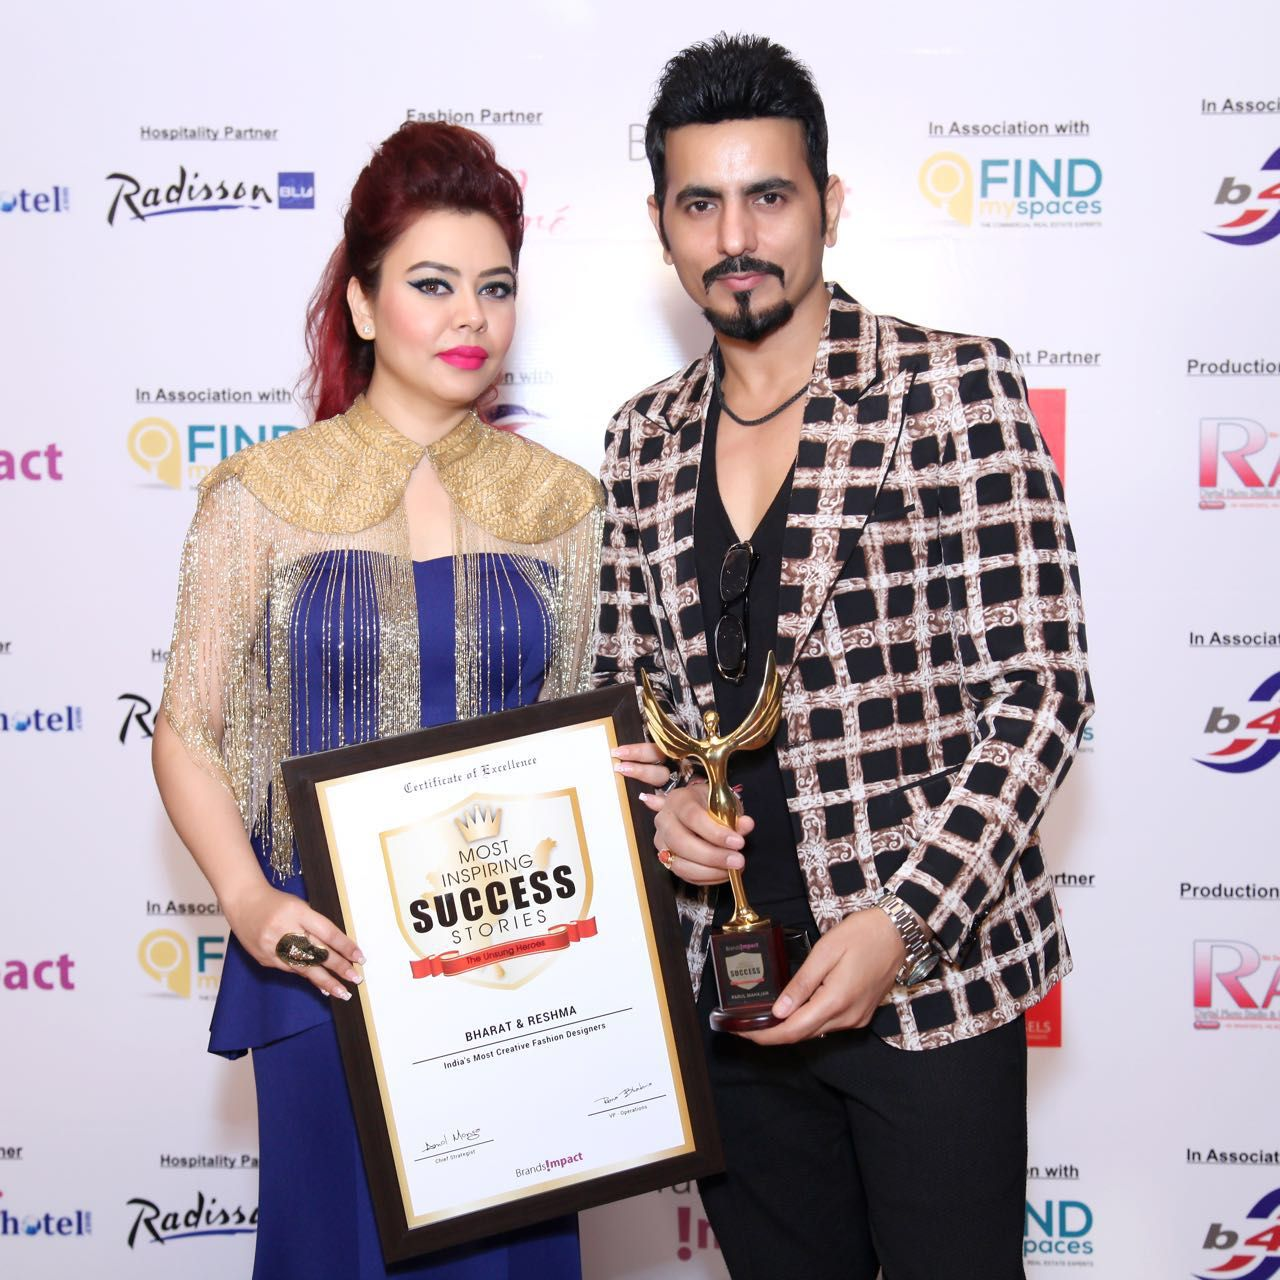 Designer Duo Bharat Reshma Grover Felicitated With Most Inspiring Success Stories Award Core Sector Communique